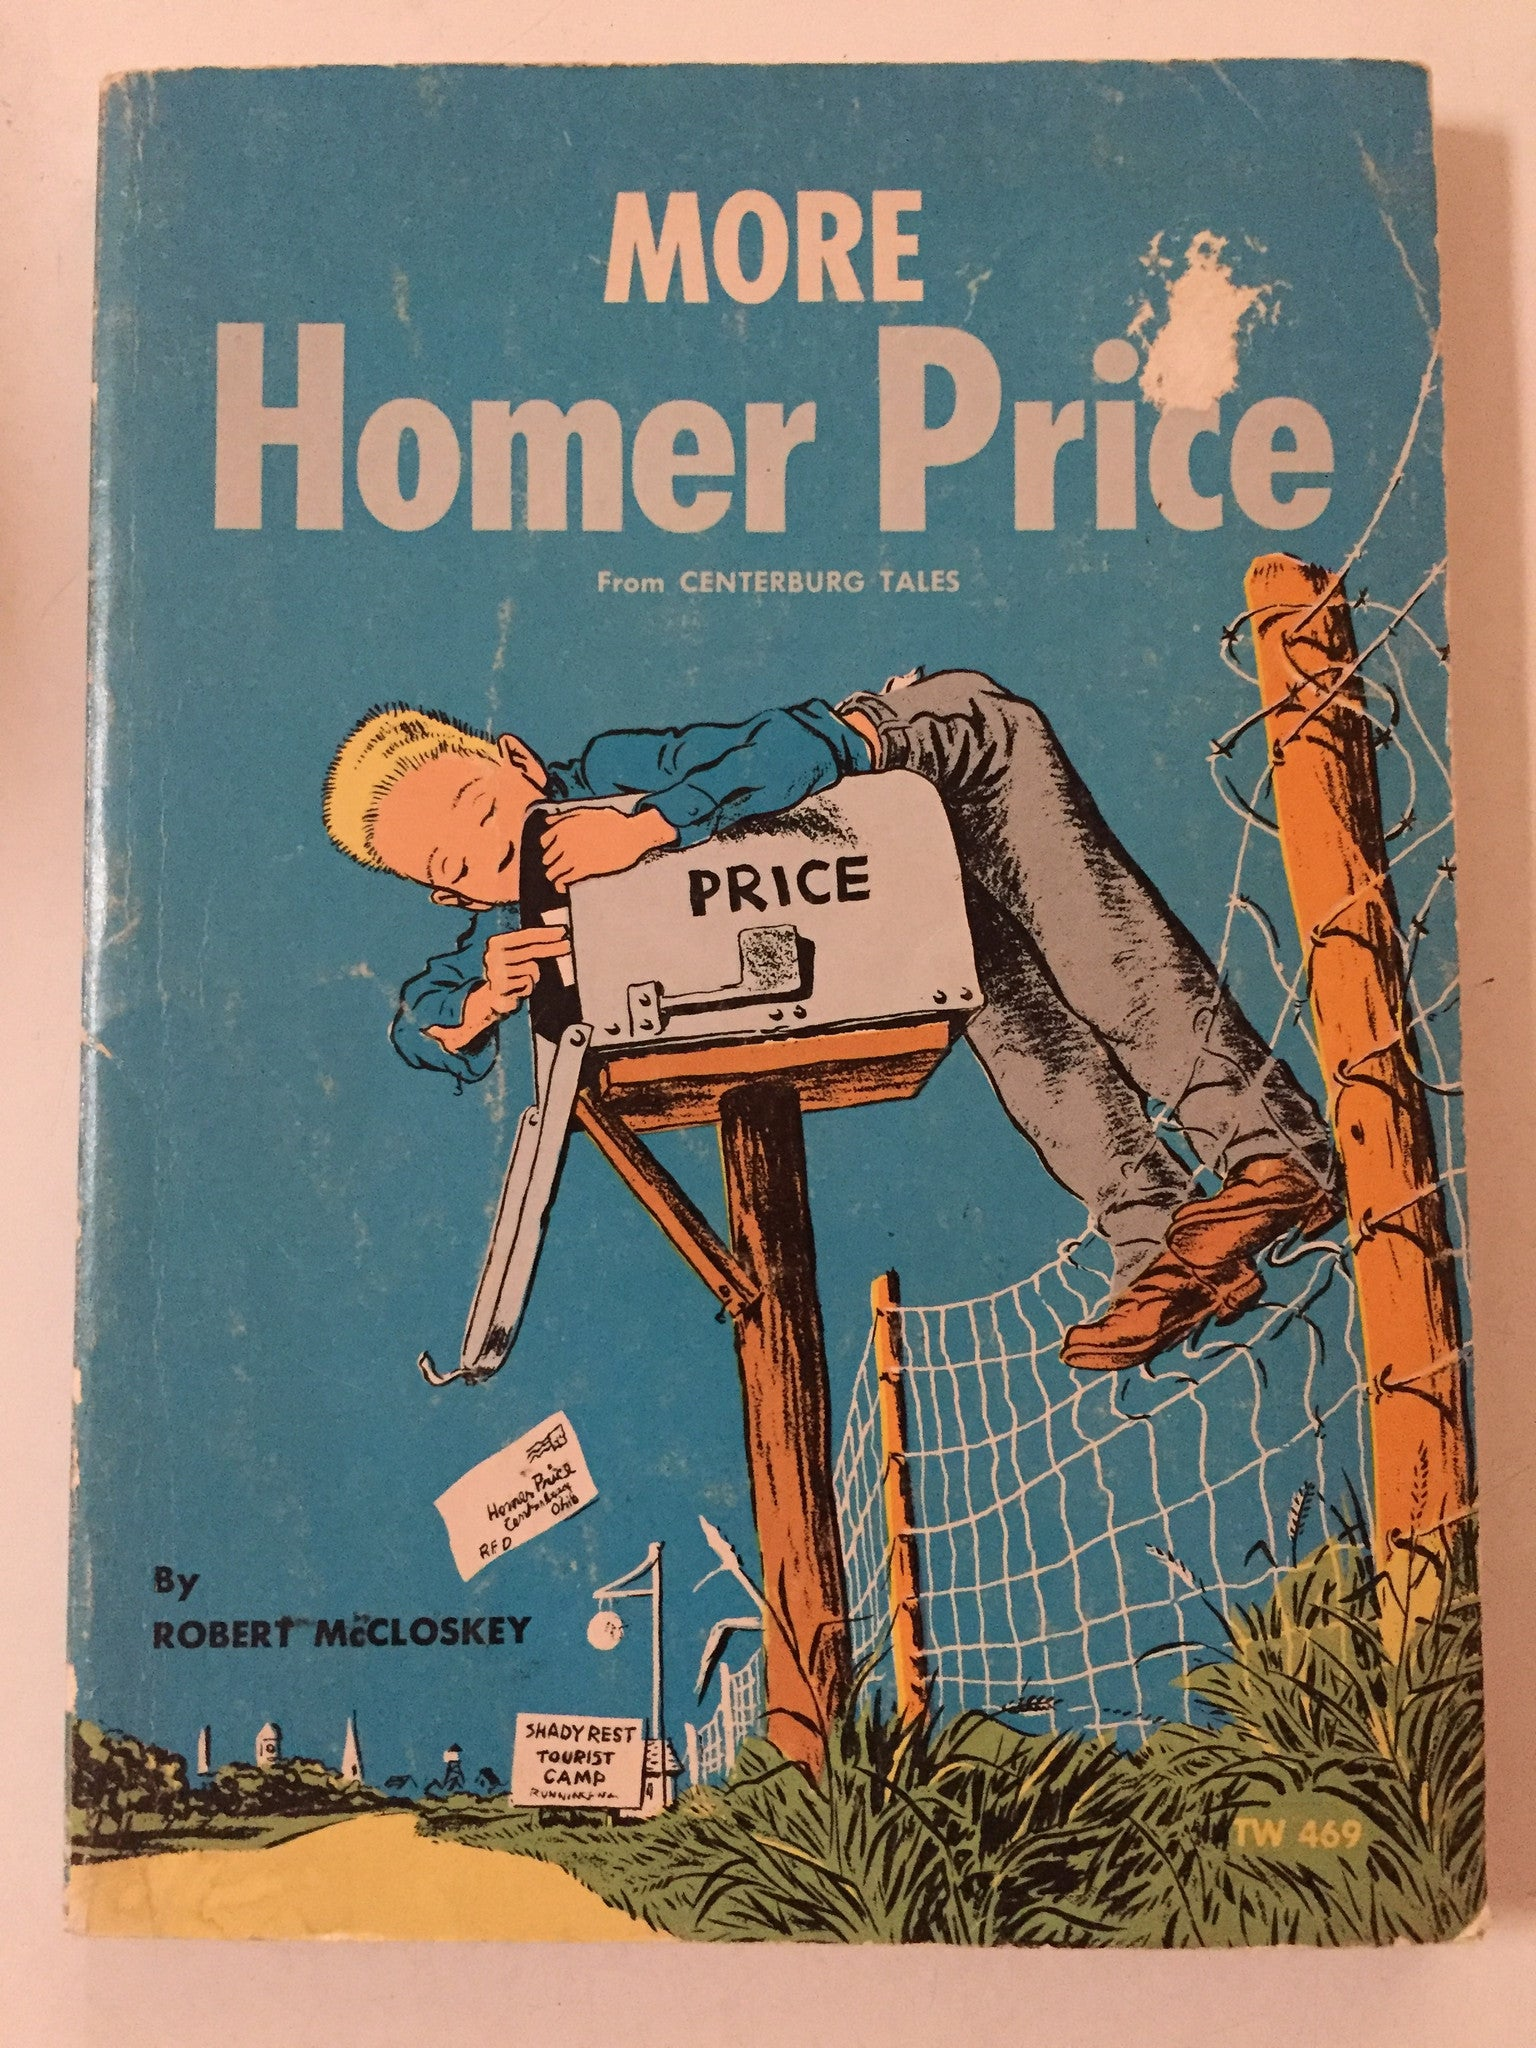 More Homer Price (from Centerburg Tales) - Slickcatbooks